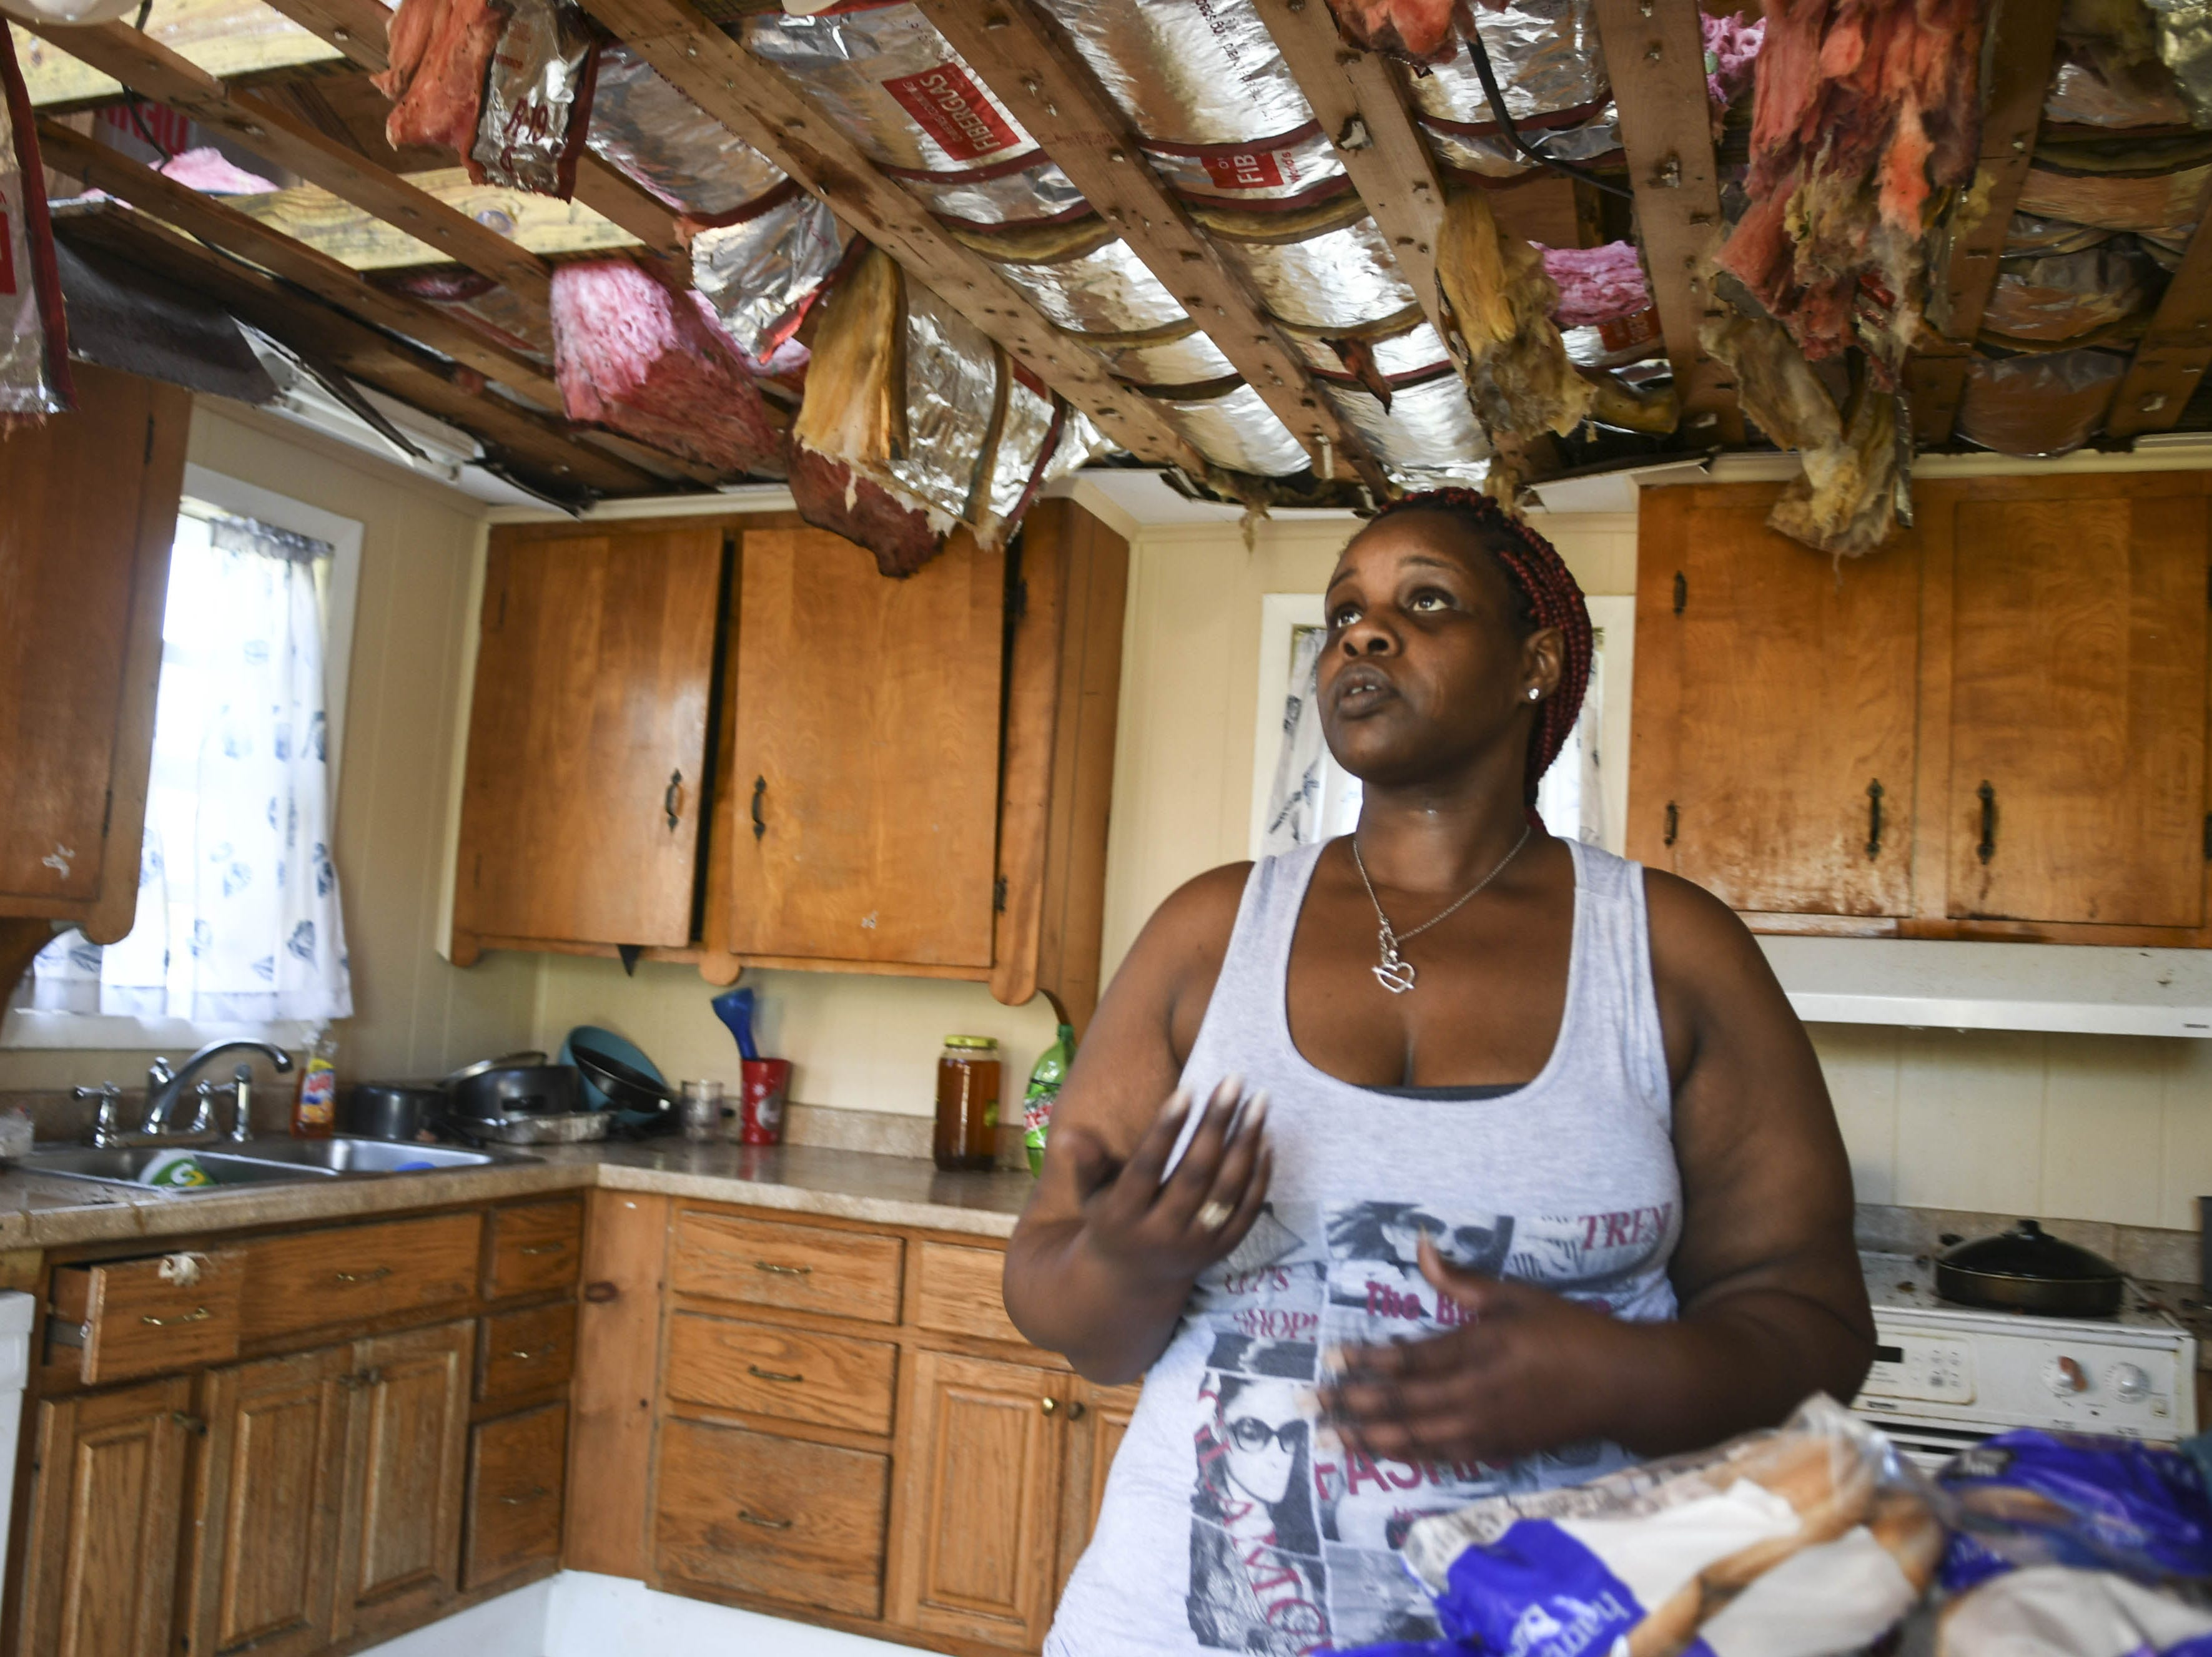 Sheila Dukes stands in the ruined kitchen of her rental house in Panama City, FL. Hurricane Michael tore the roof off, flooding the entire wooden structure.